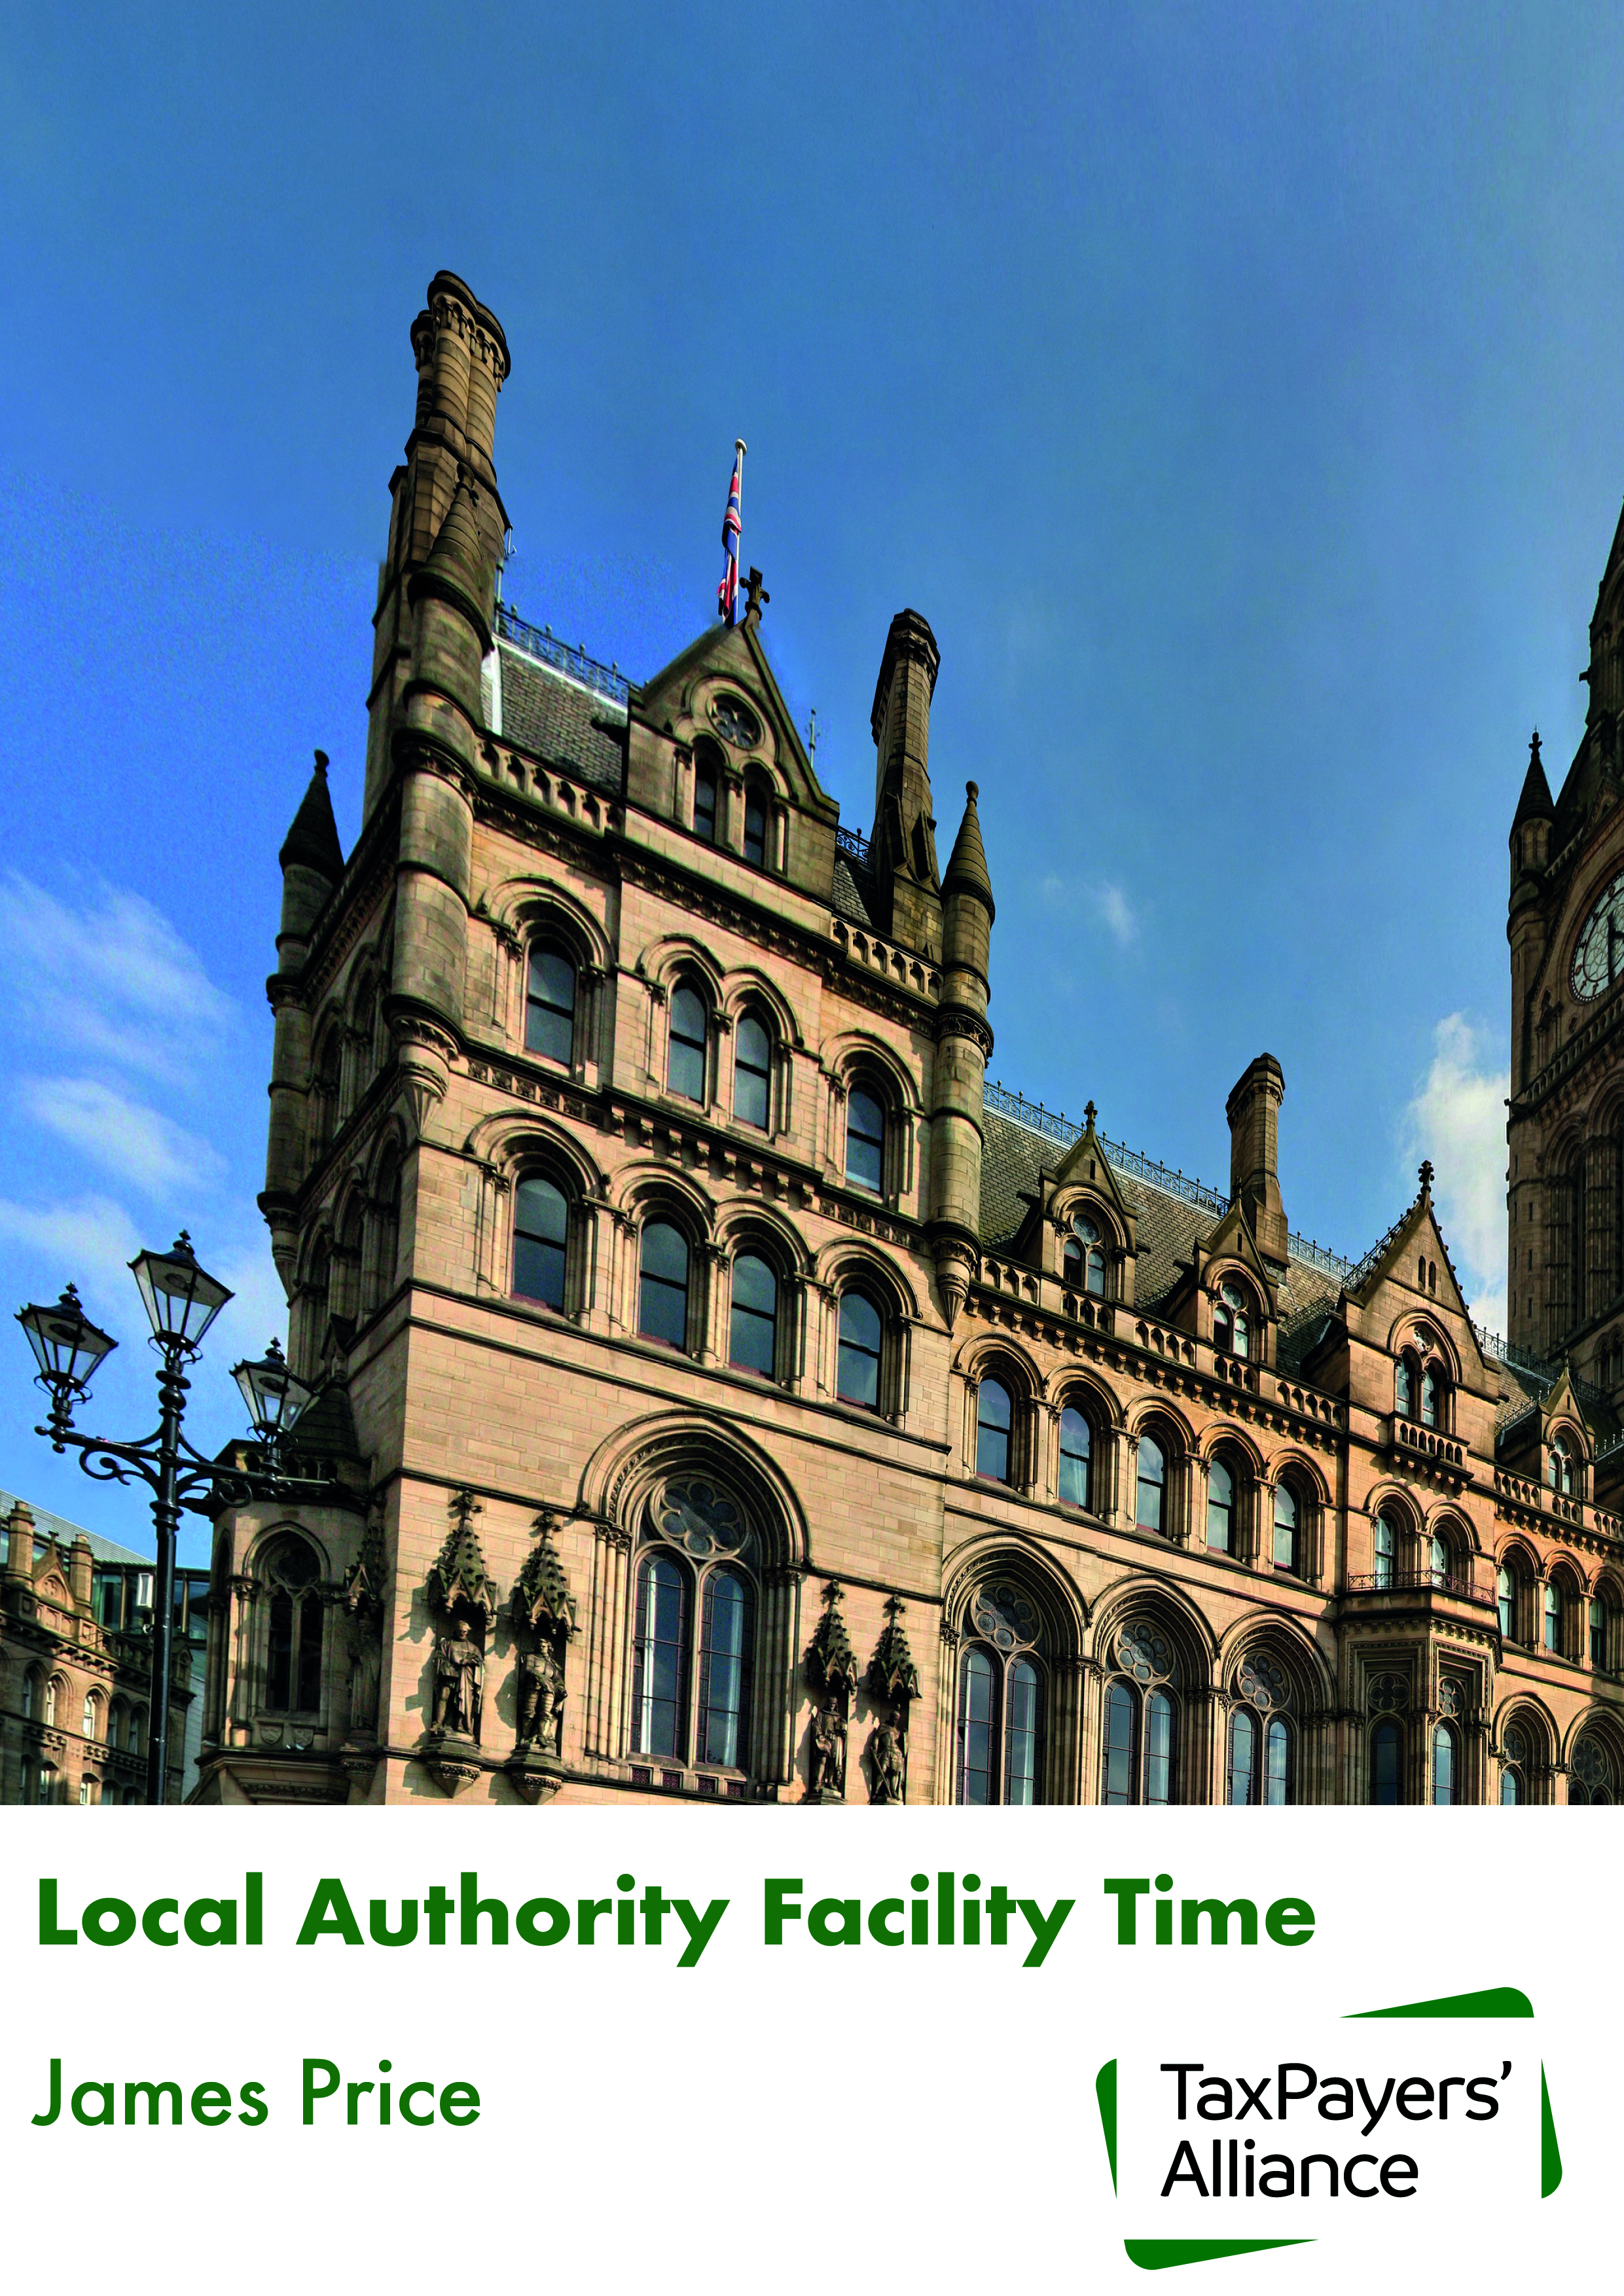 Local Authority Facility Time